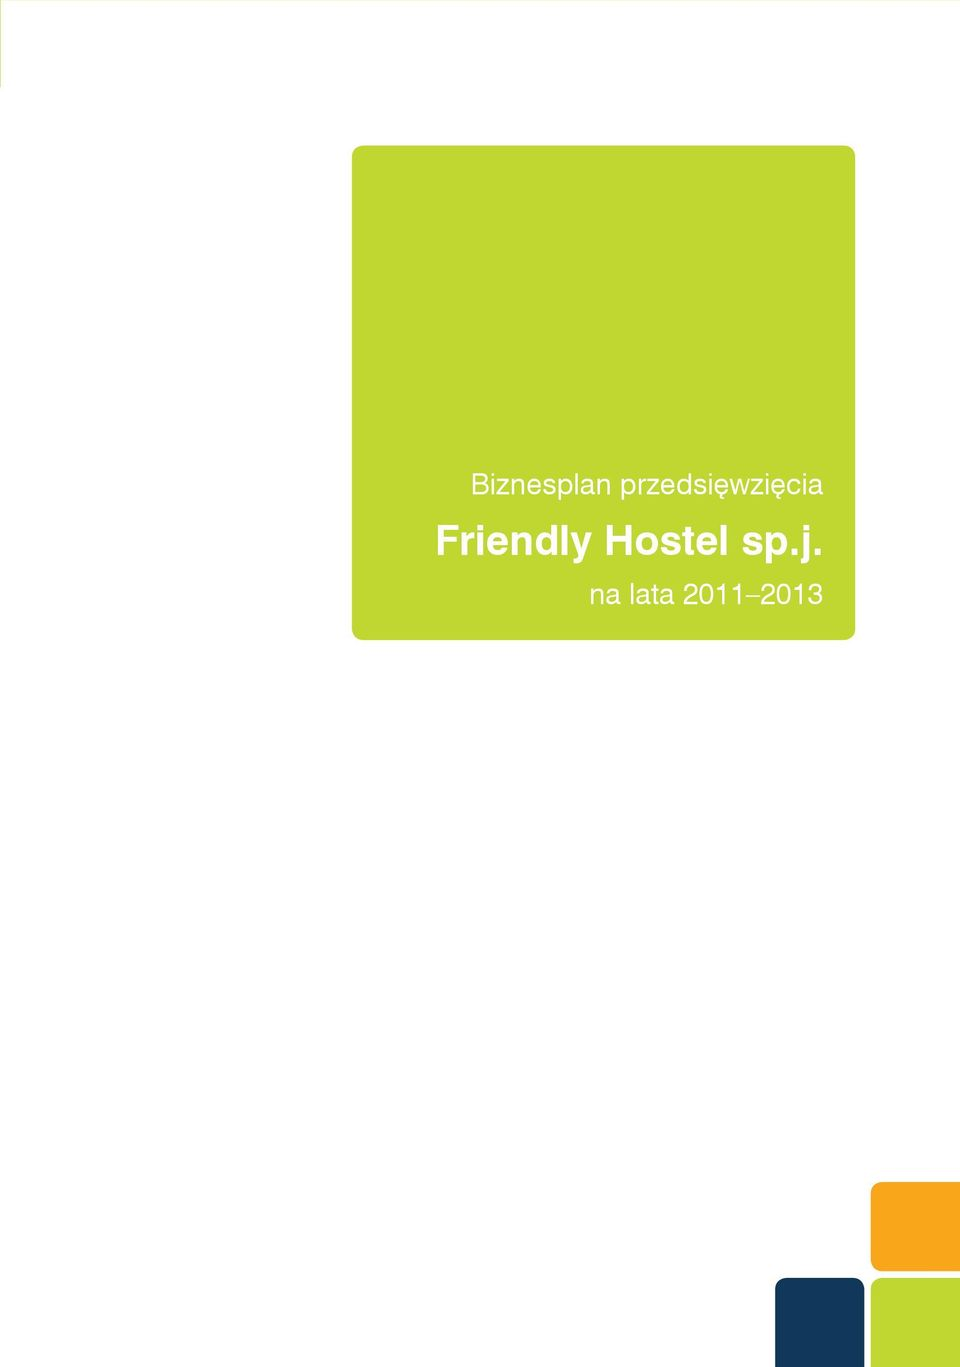 Friendly Hostel